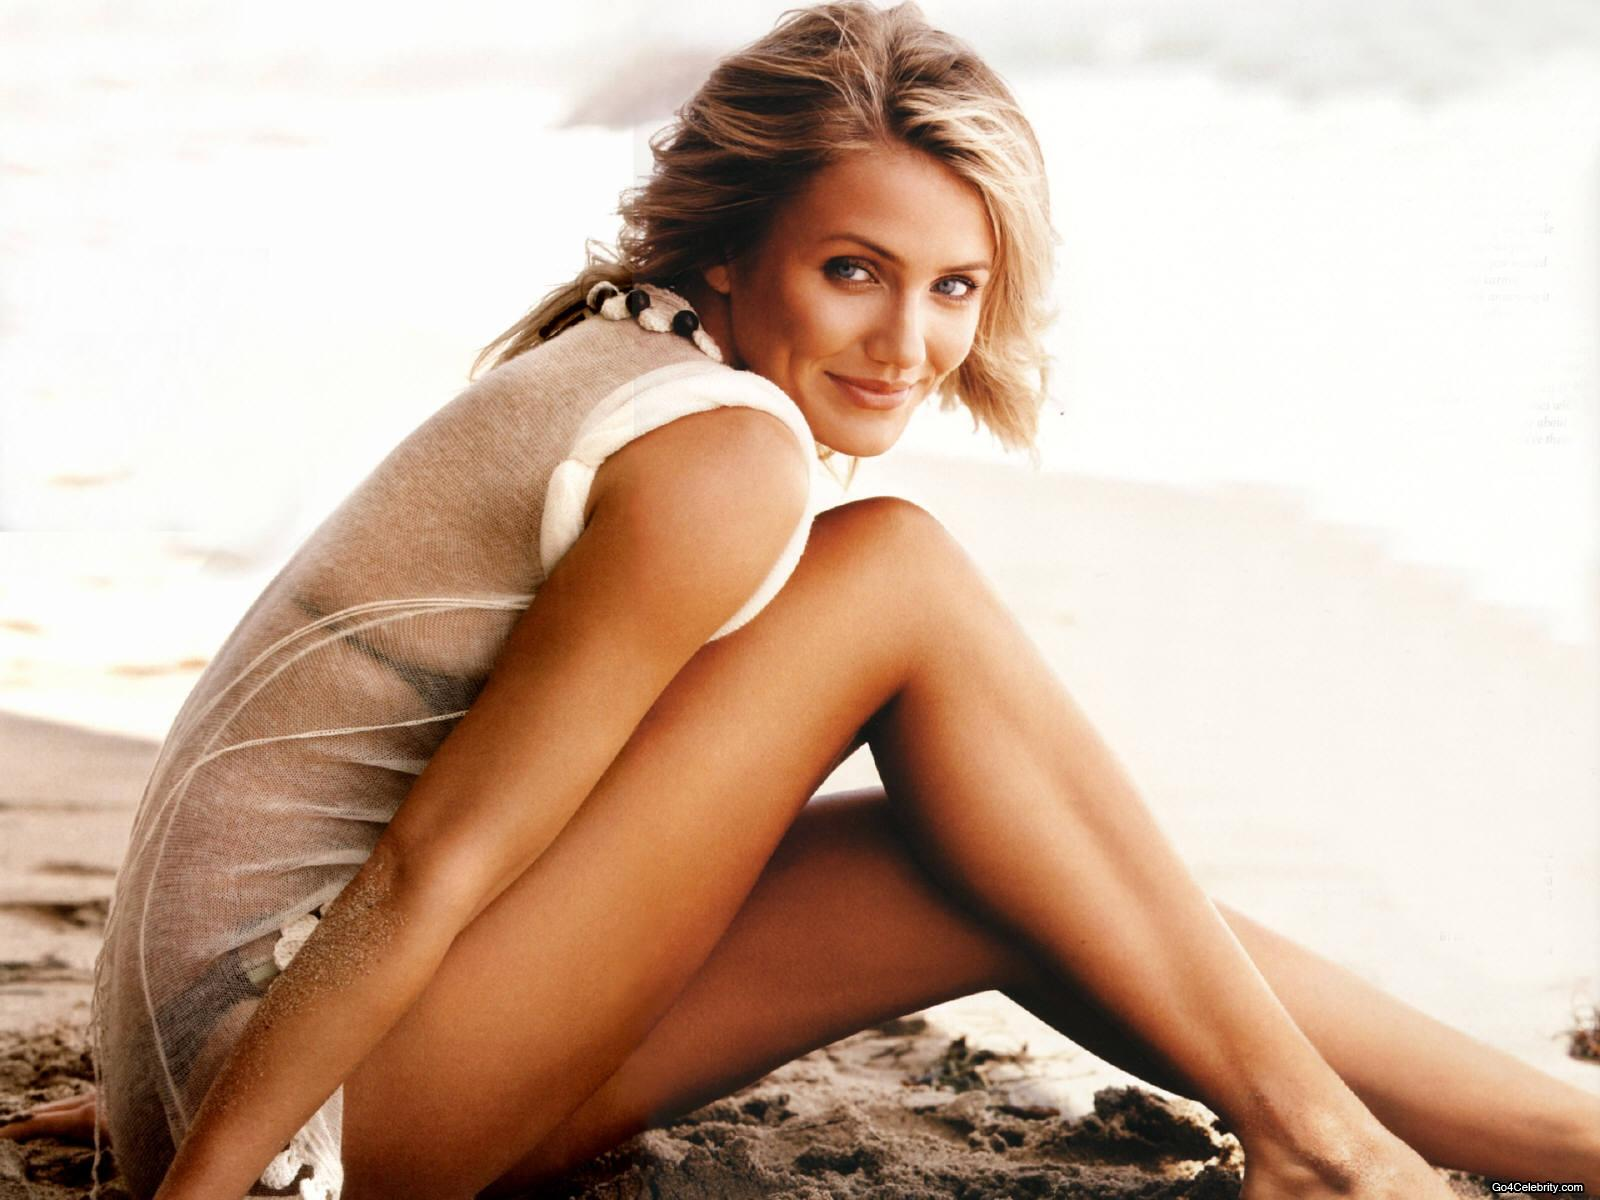 south mp3 songs: Cameron Diaz hd wallpapers